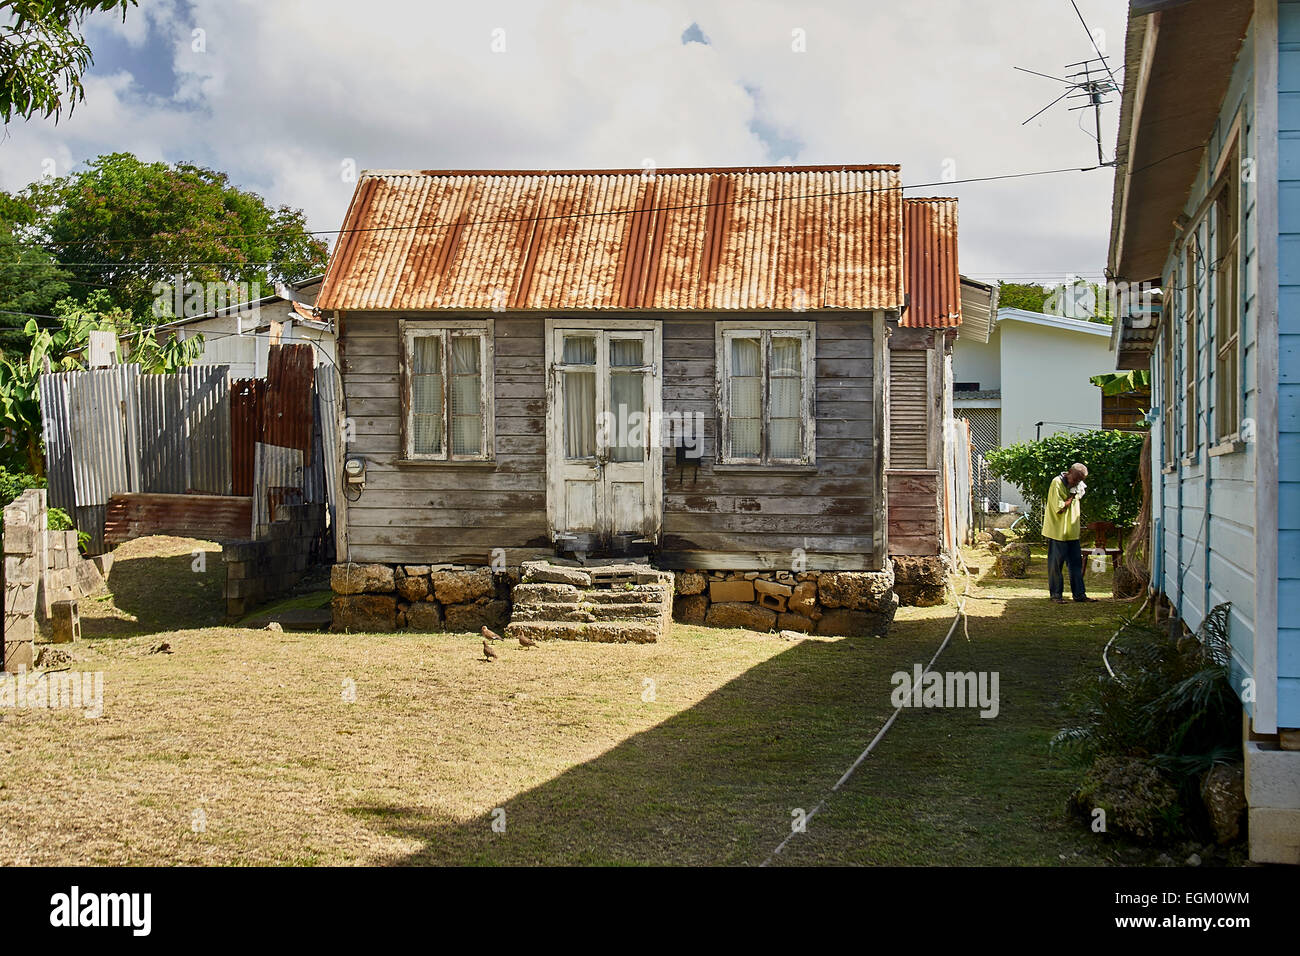 Barbados Wooden House Rusty Corrugated Tin Roof Front